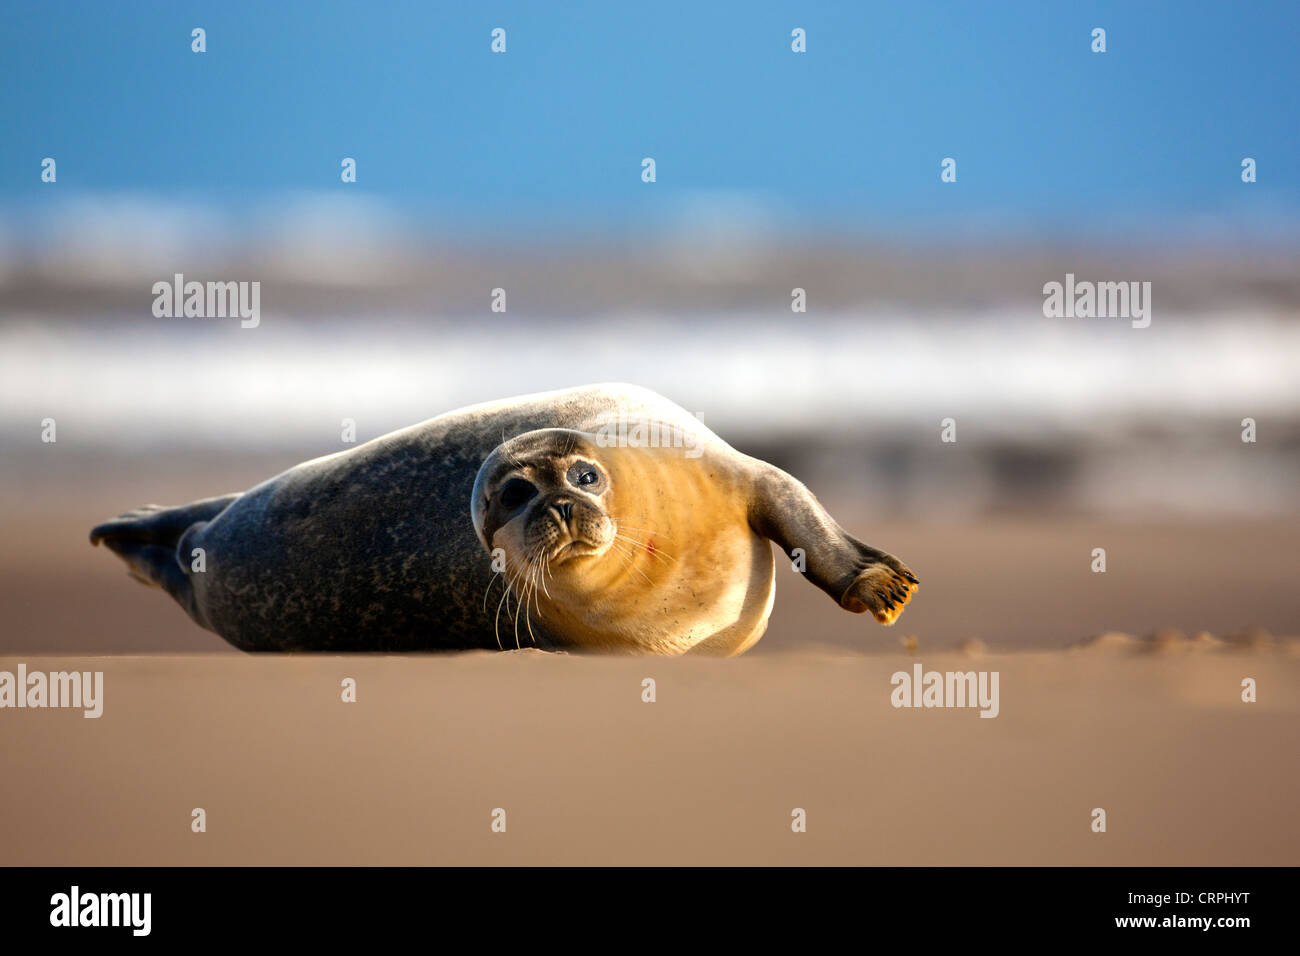 North Atlantic Grey Seal (Halichoerus grypus) on a sandflat at the Donna Nook Nature Reserve. Stock Photo